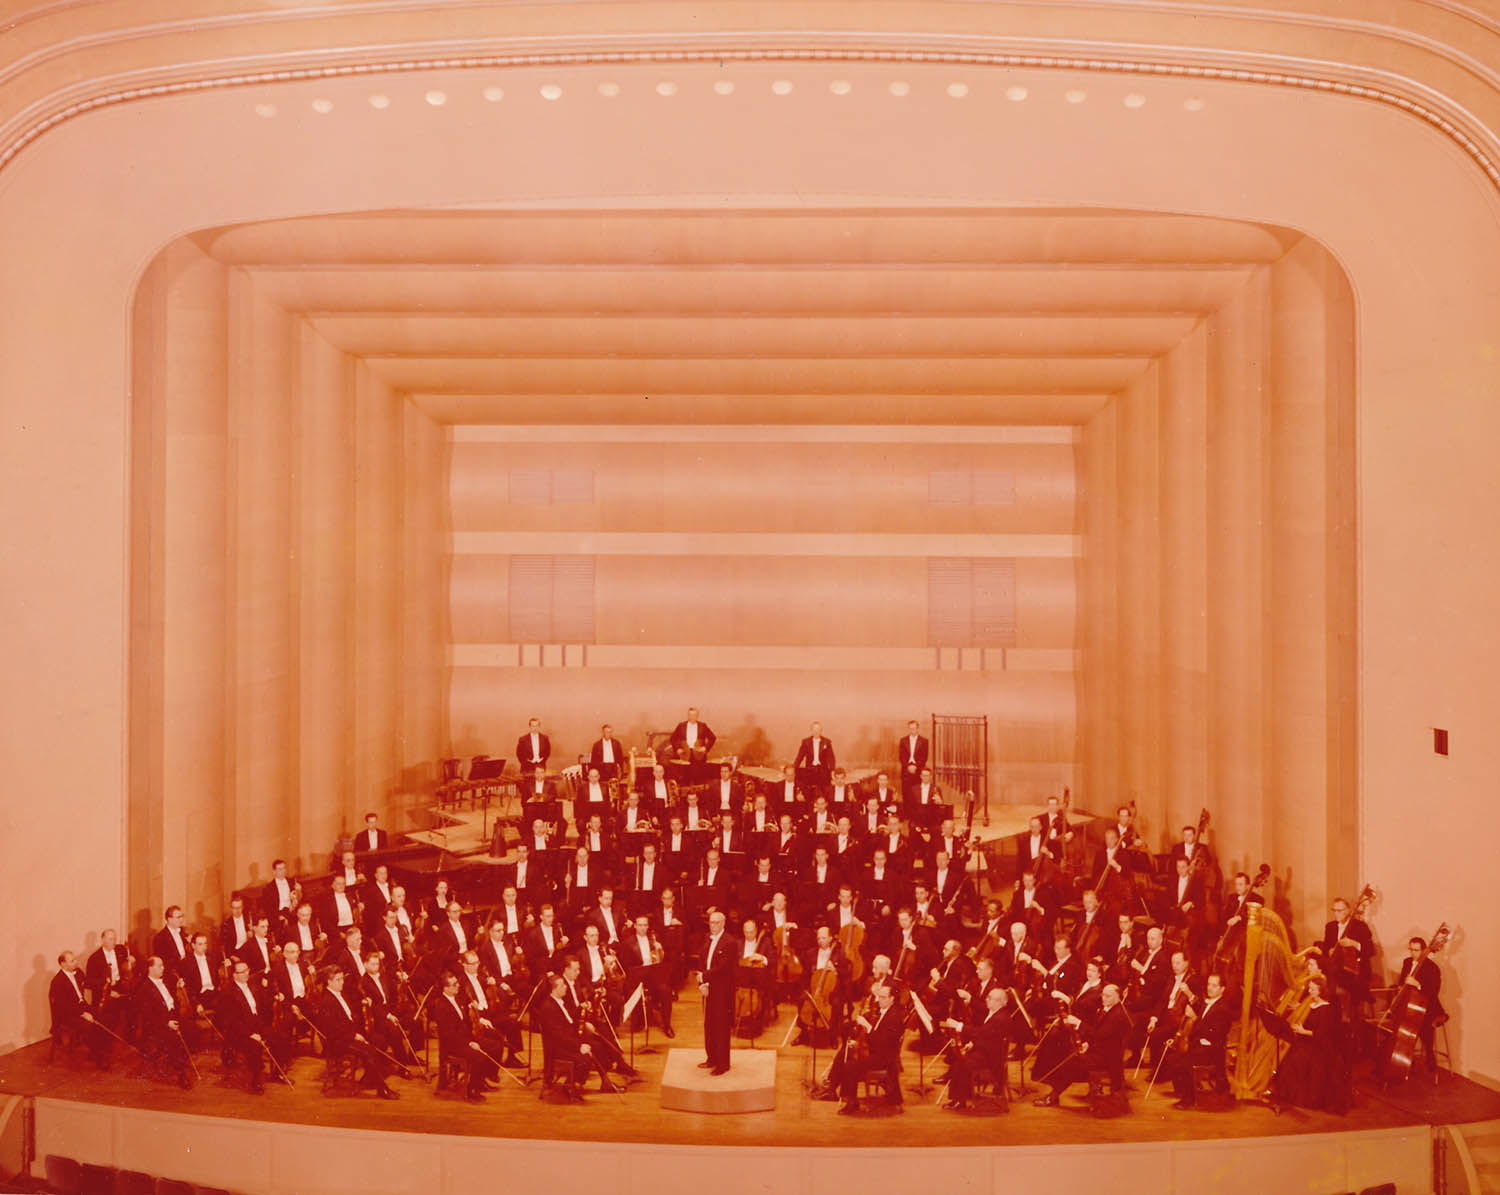 The Cleveland Orchestra and George Szell pose in the newly renovated Concert Hall. Unknown photographer, 1958.